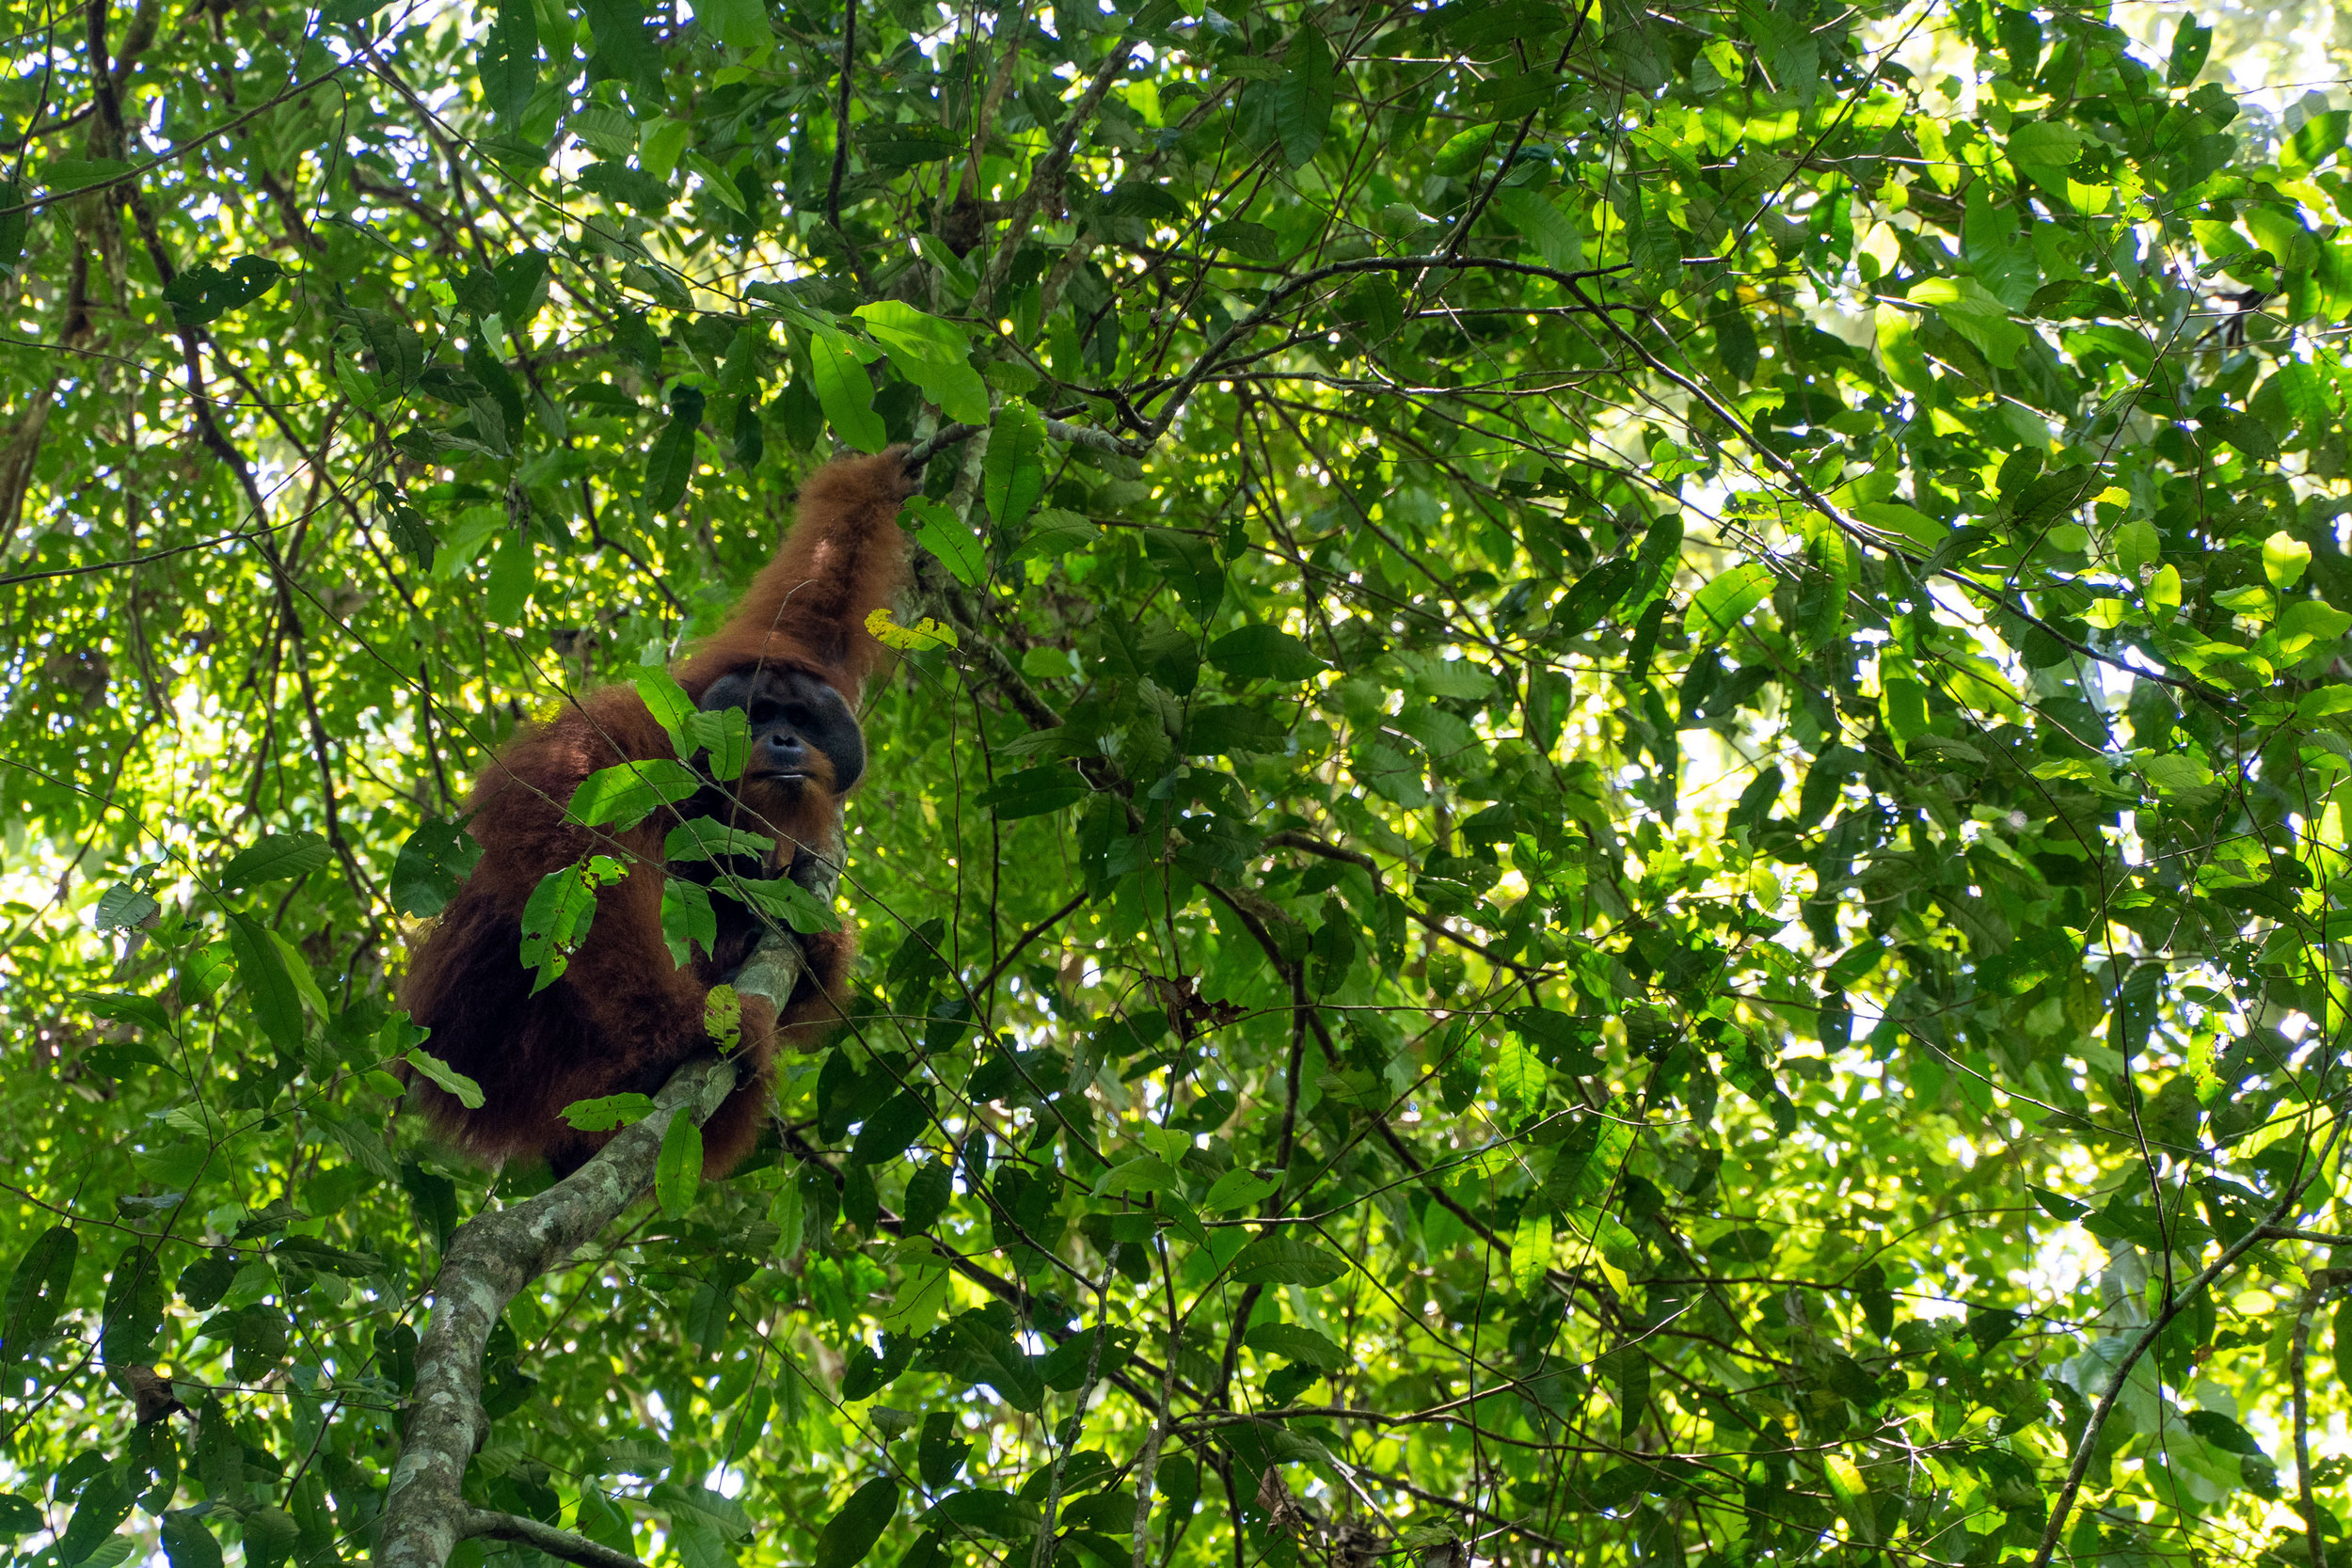 A large male wild orangutan in the jungle of Gunung Leuser National Park.